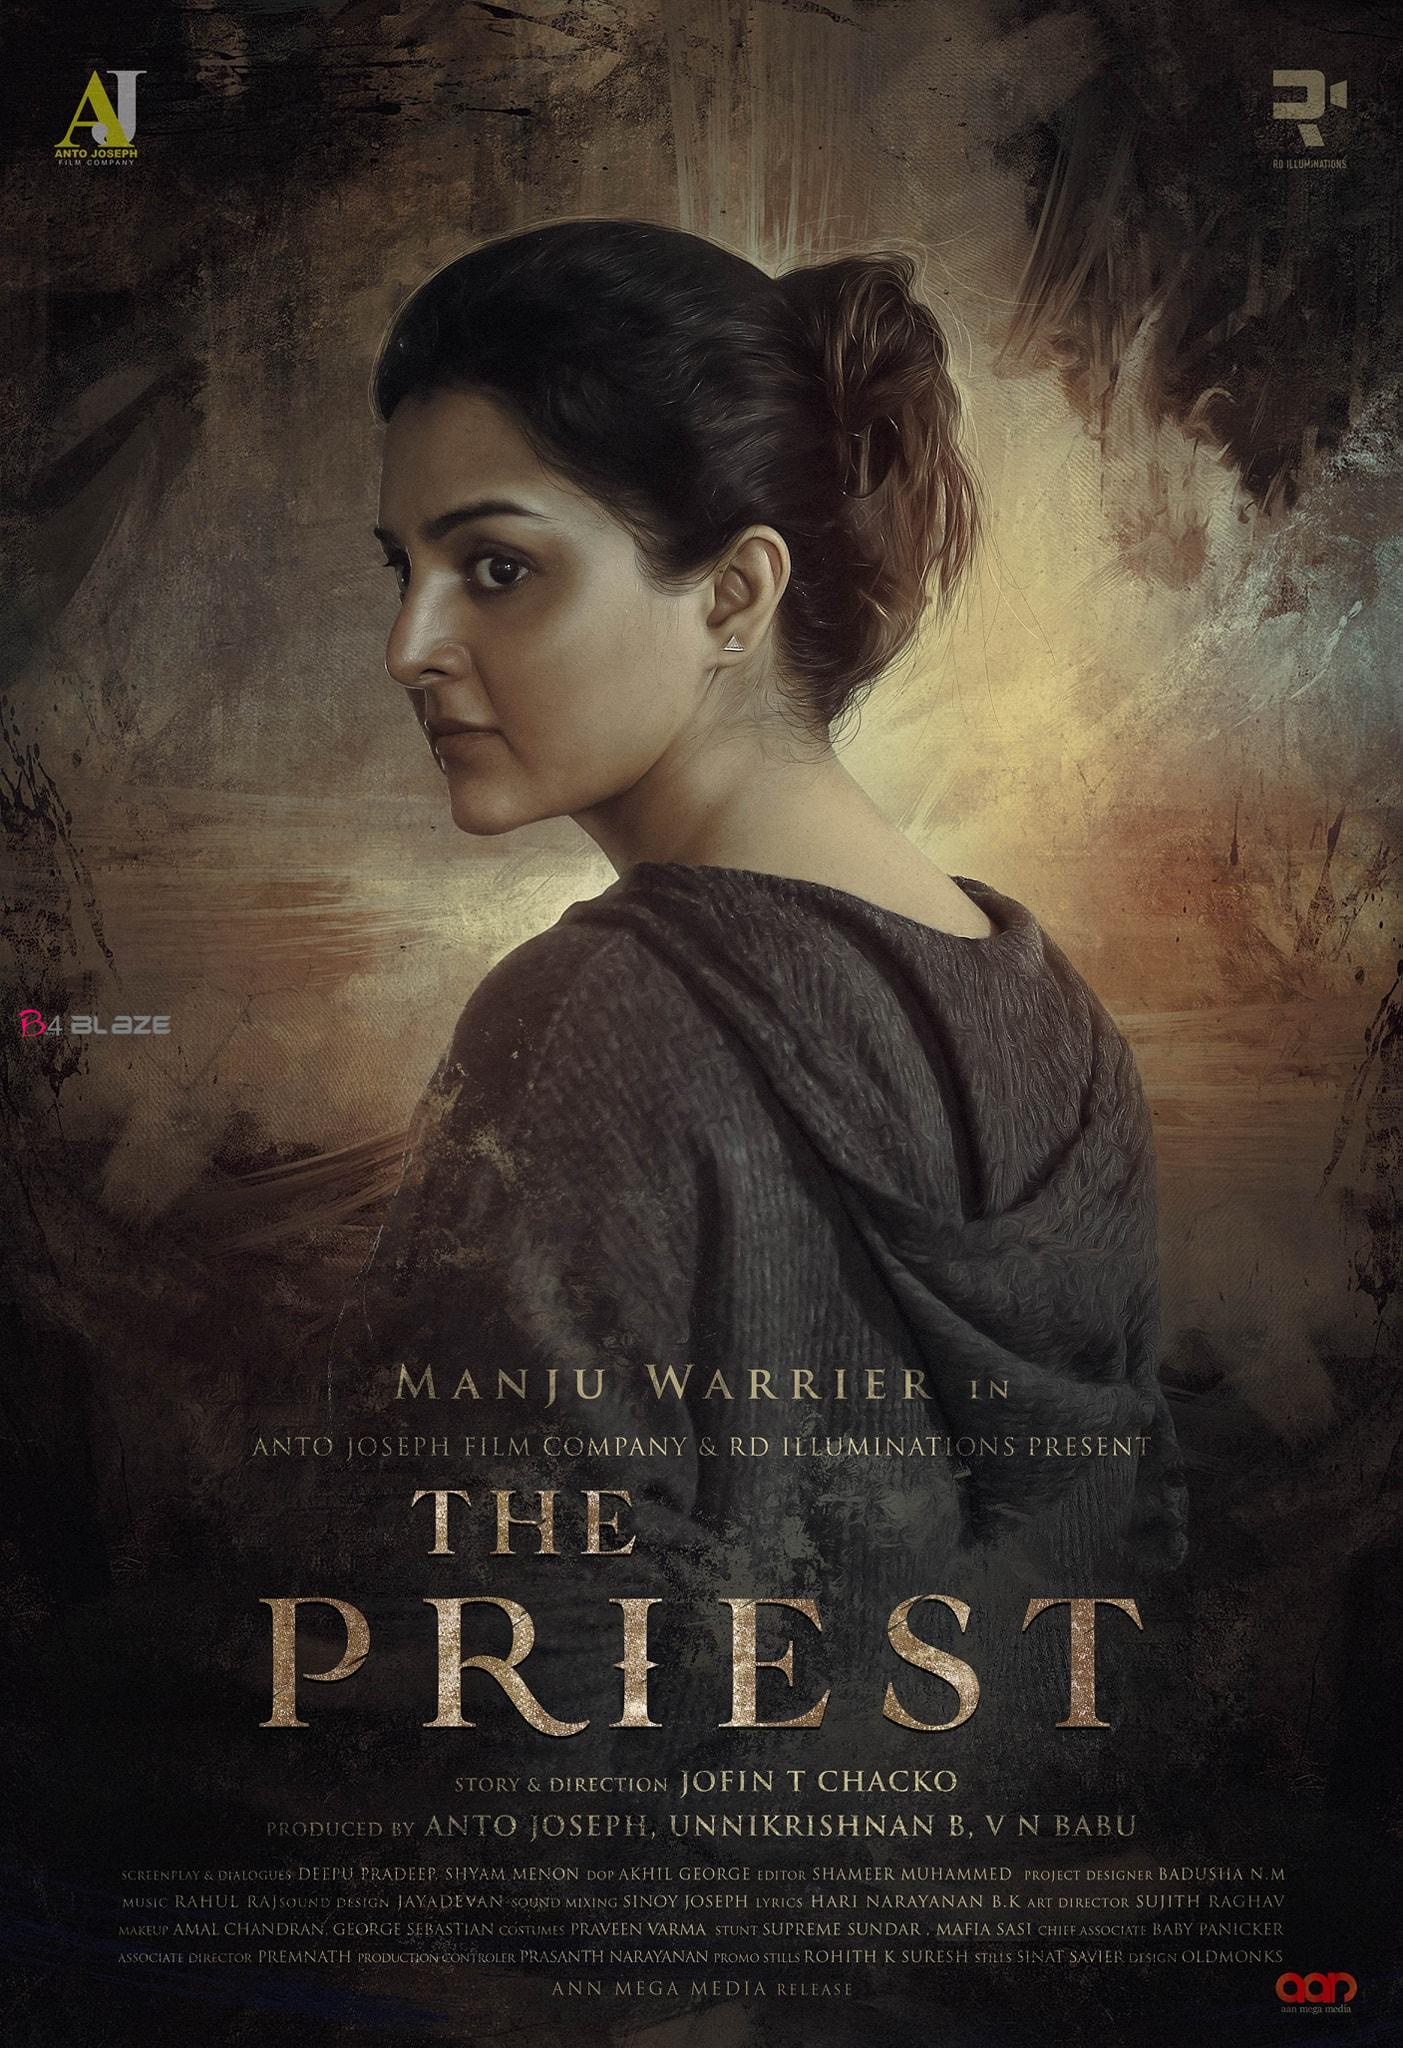 The Priest Movie Box Office Collection